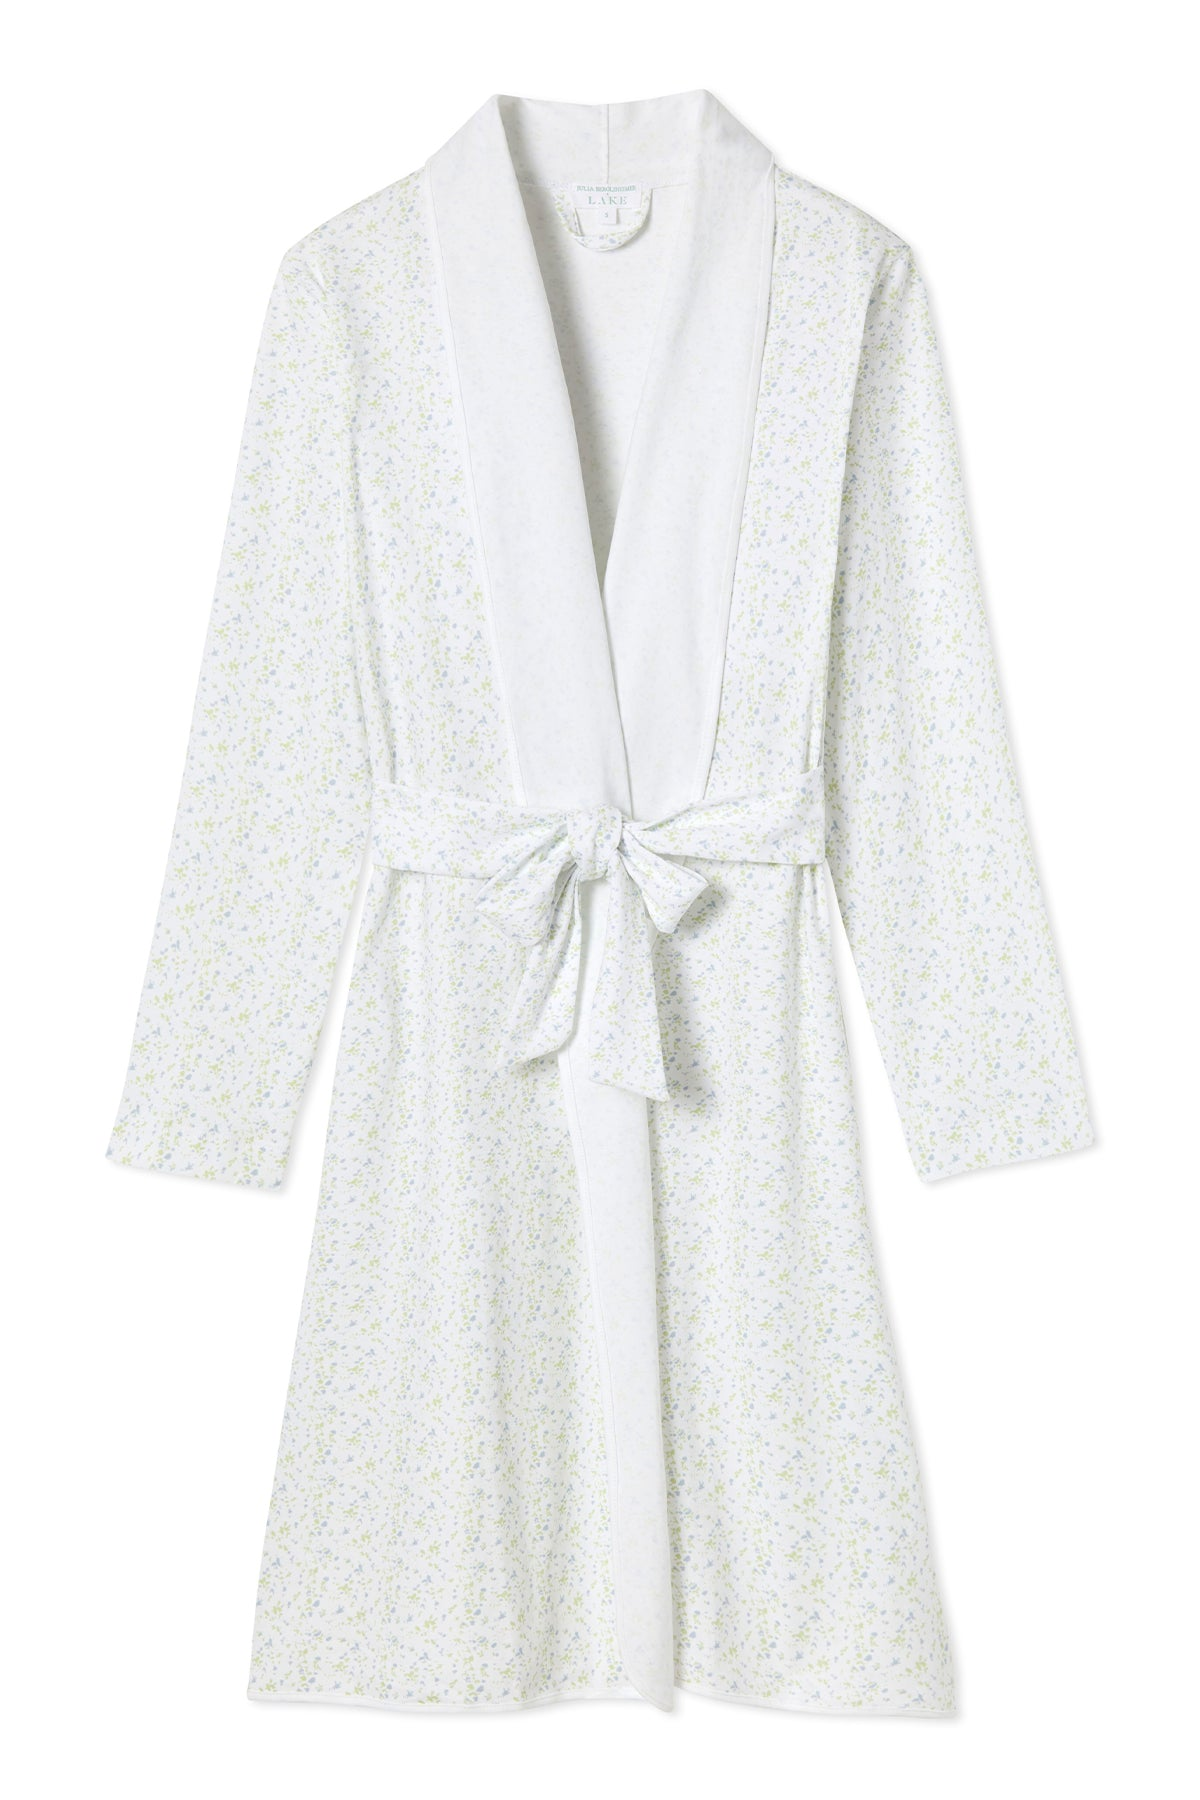 JB x LAKE Pima Robe in Meadow